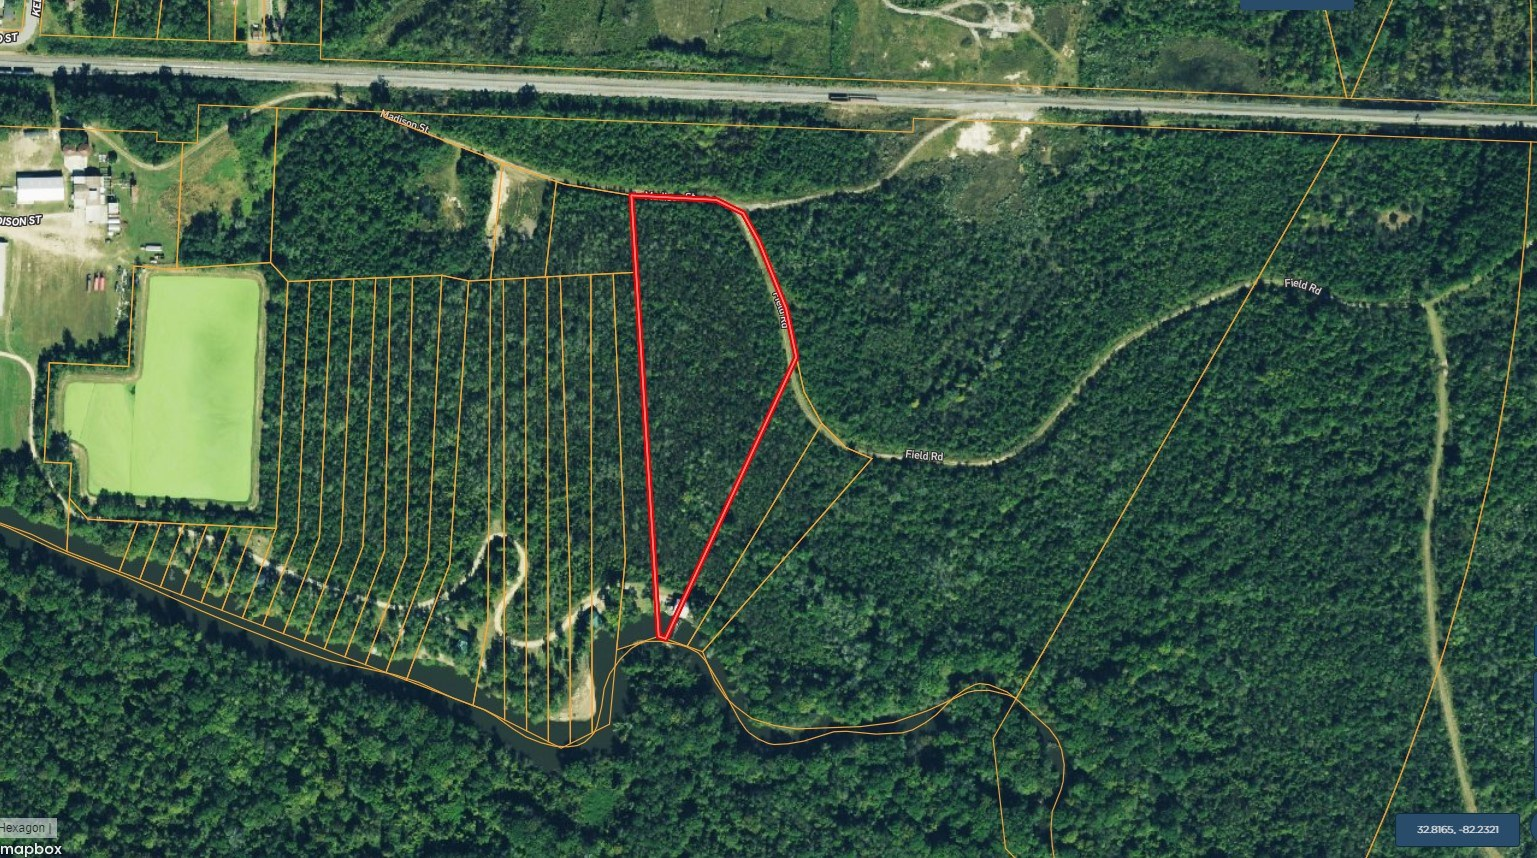 Ogeechee Riverfront property 7.55 acres